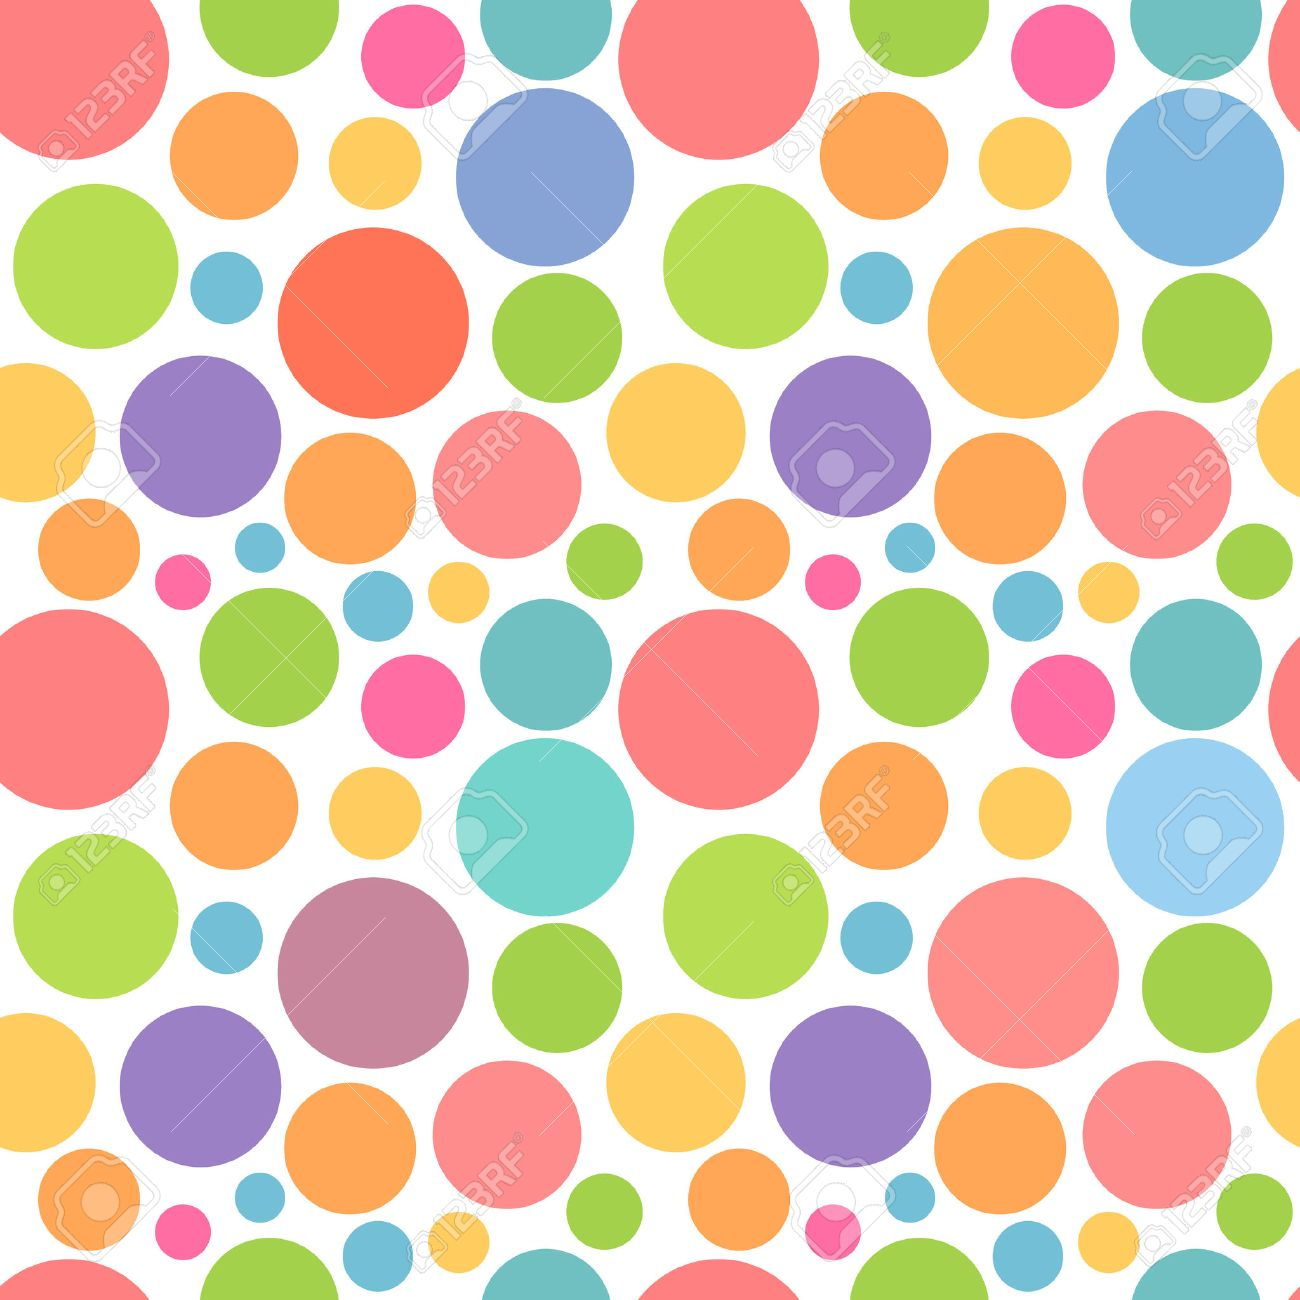 Colorful dots pattern. Vector illustration - 56477188